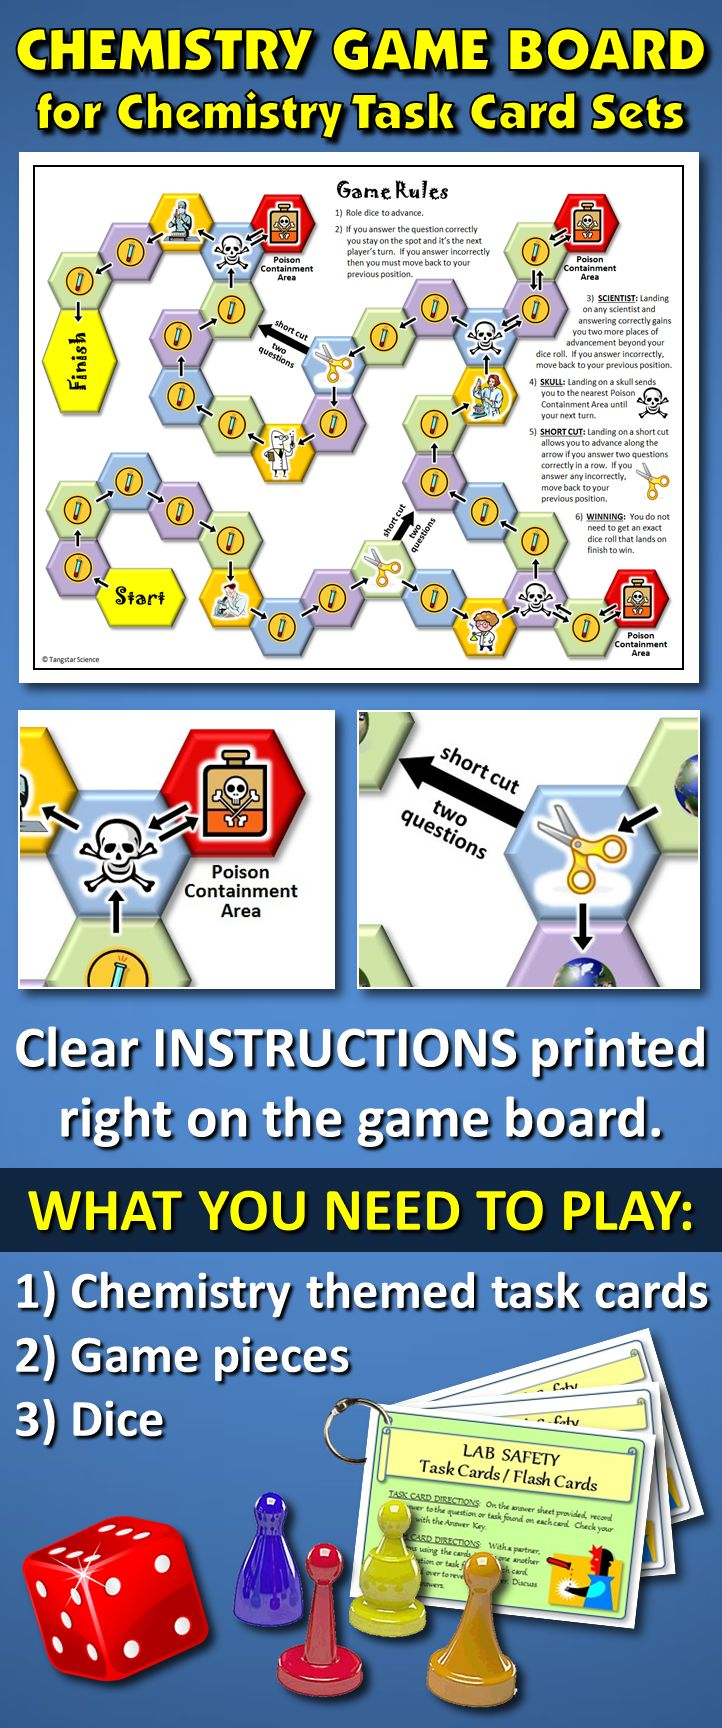 "THIS CHEMISTRY GAME BOARD ADDS VALUE TO ANY CHEMISTRY THEMED TASK CARD SET: If you've got task cards already or are thinking of buying them, getting this one (8.5"" x 11"") game board will add value and fun to the task card experience. The rules are printed right out on the board!"